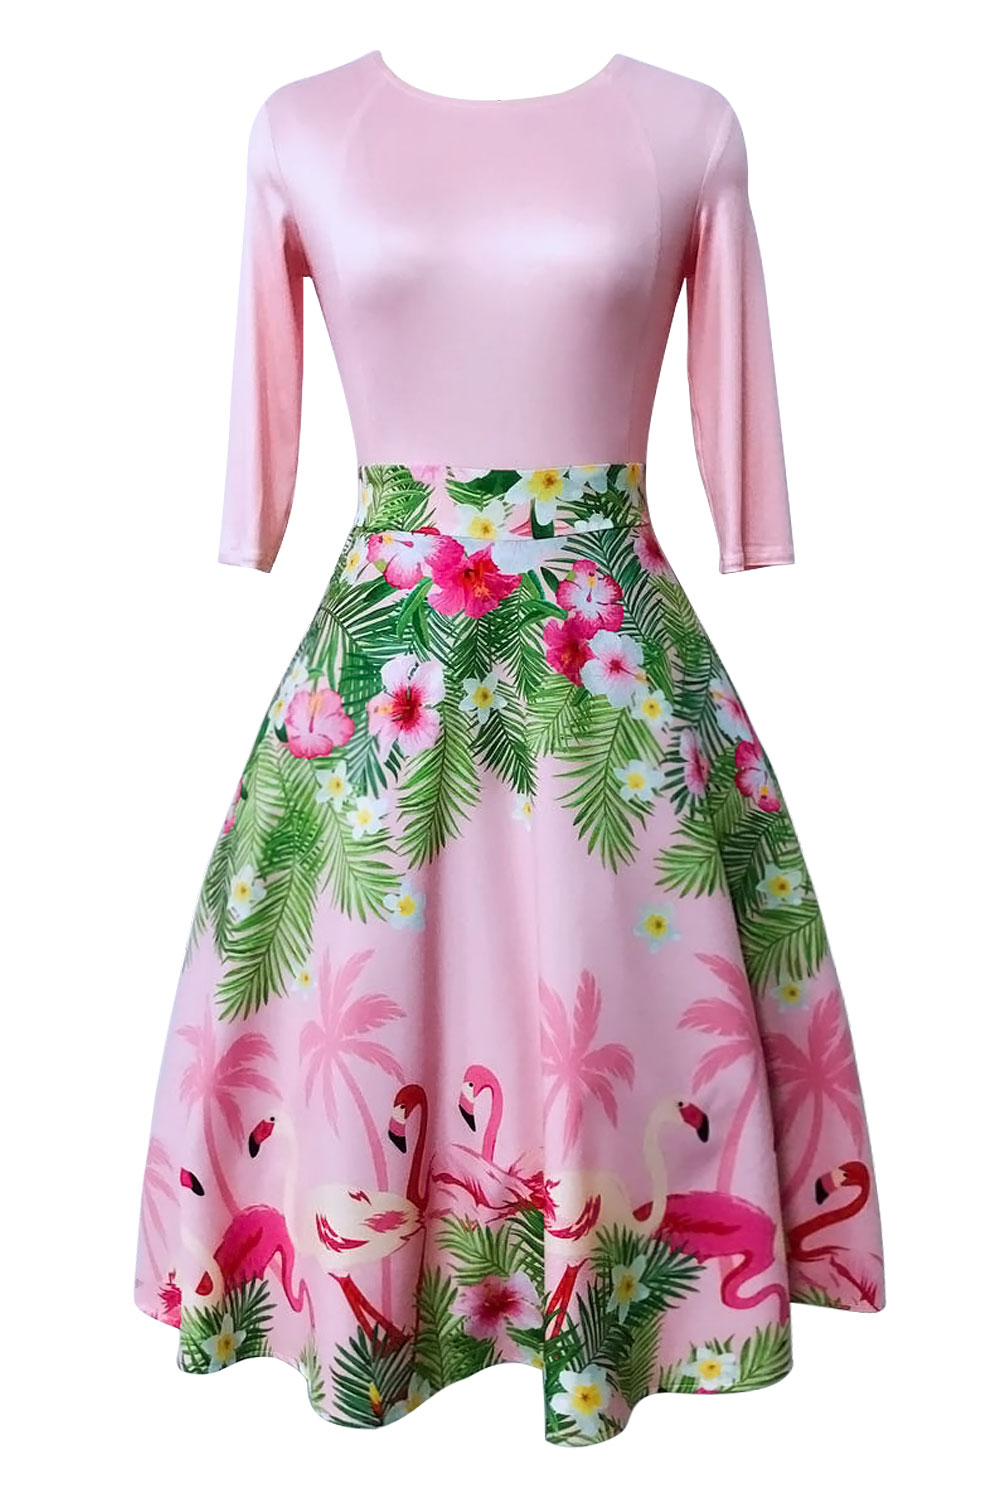 472a3ac4557d US  12.4 - Flower Print Pink Long Skater Dress with Mid Sleeves 26864 -  www.global-lover.com